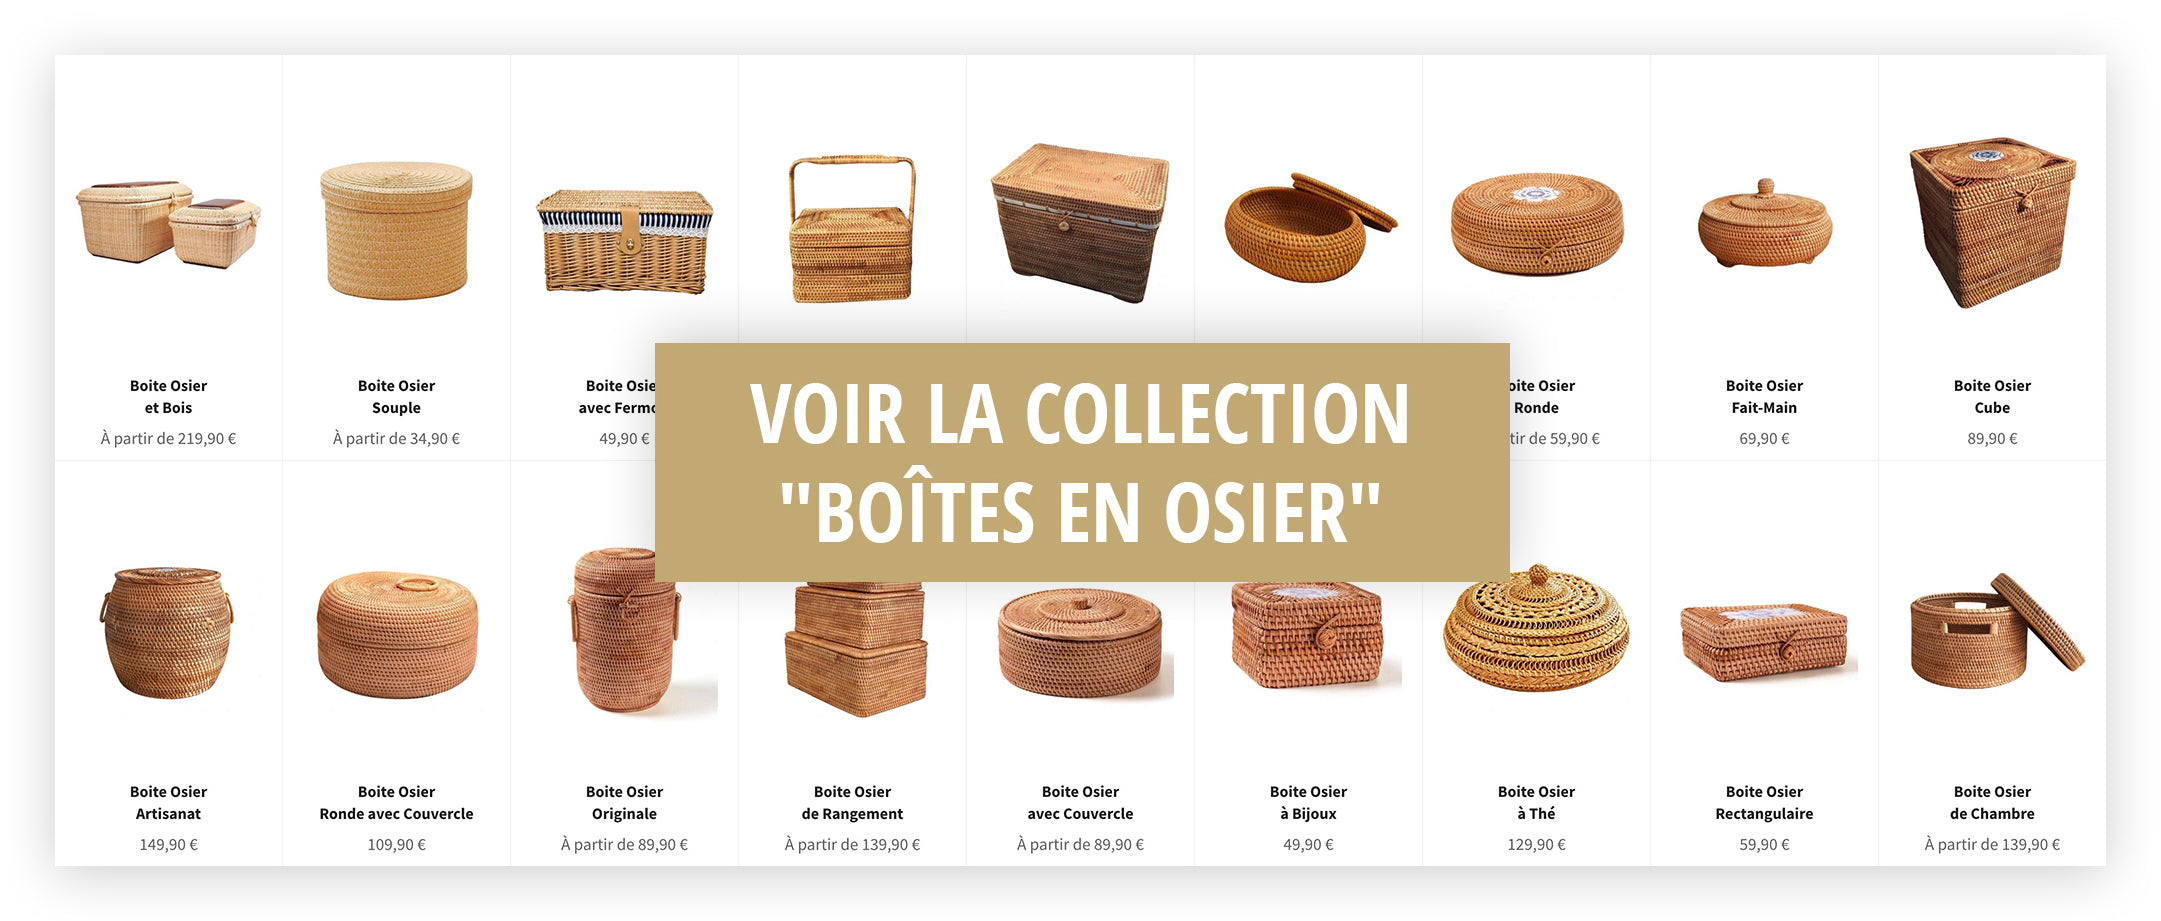 Collection Boite Osier